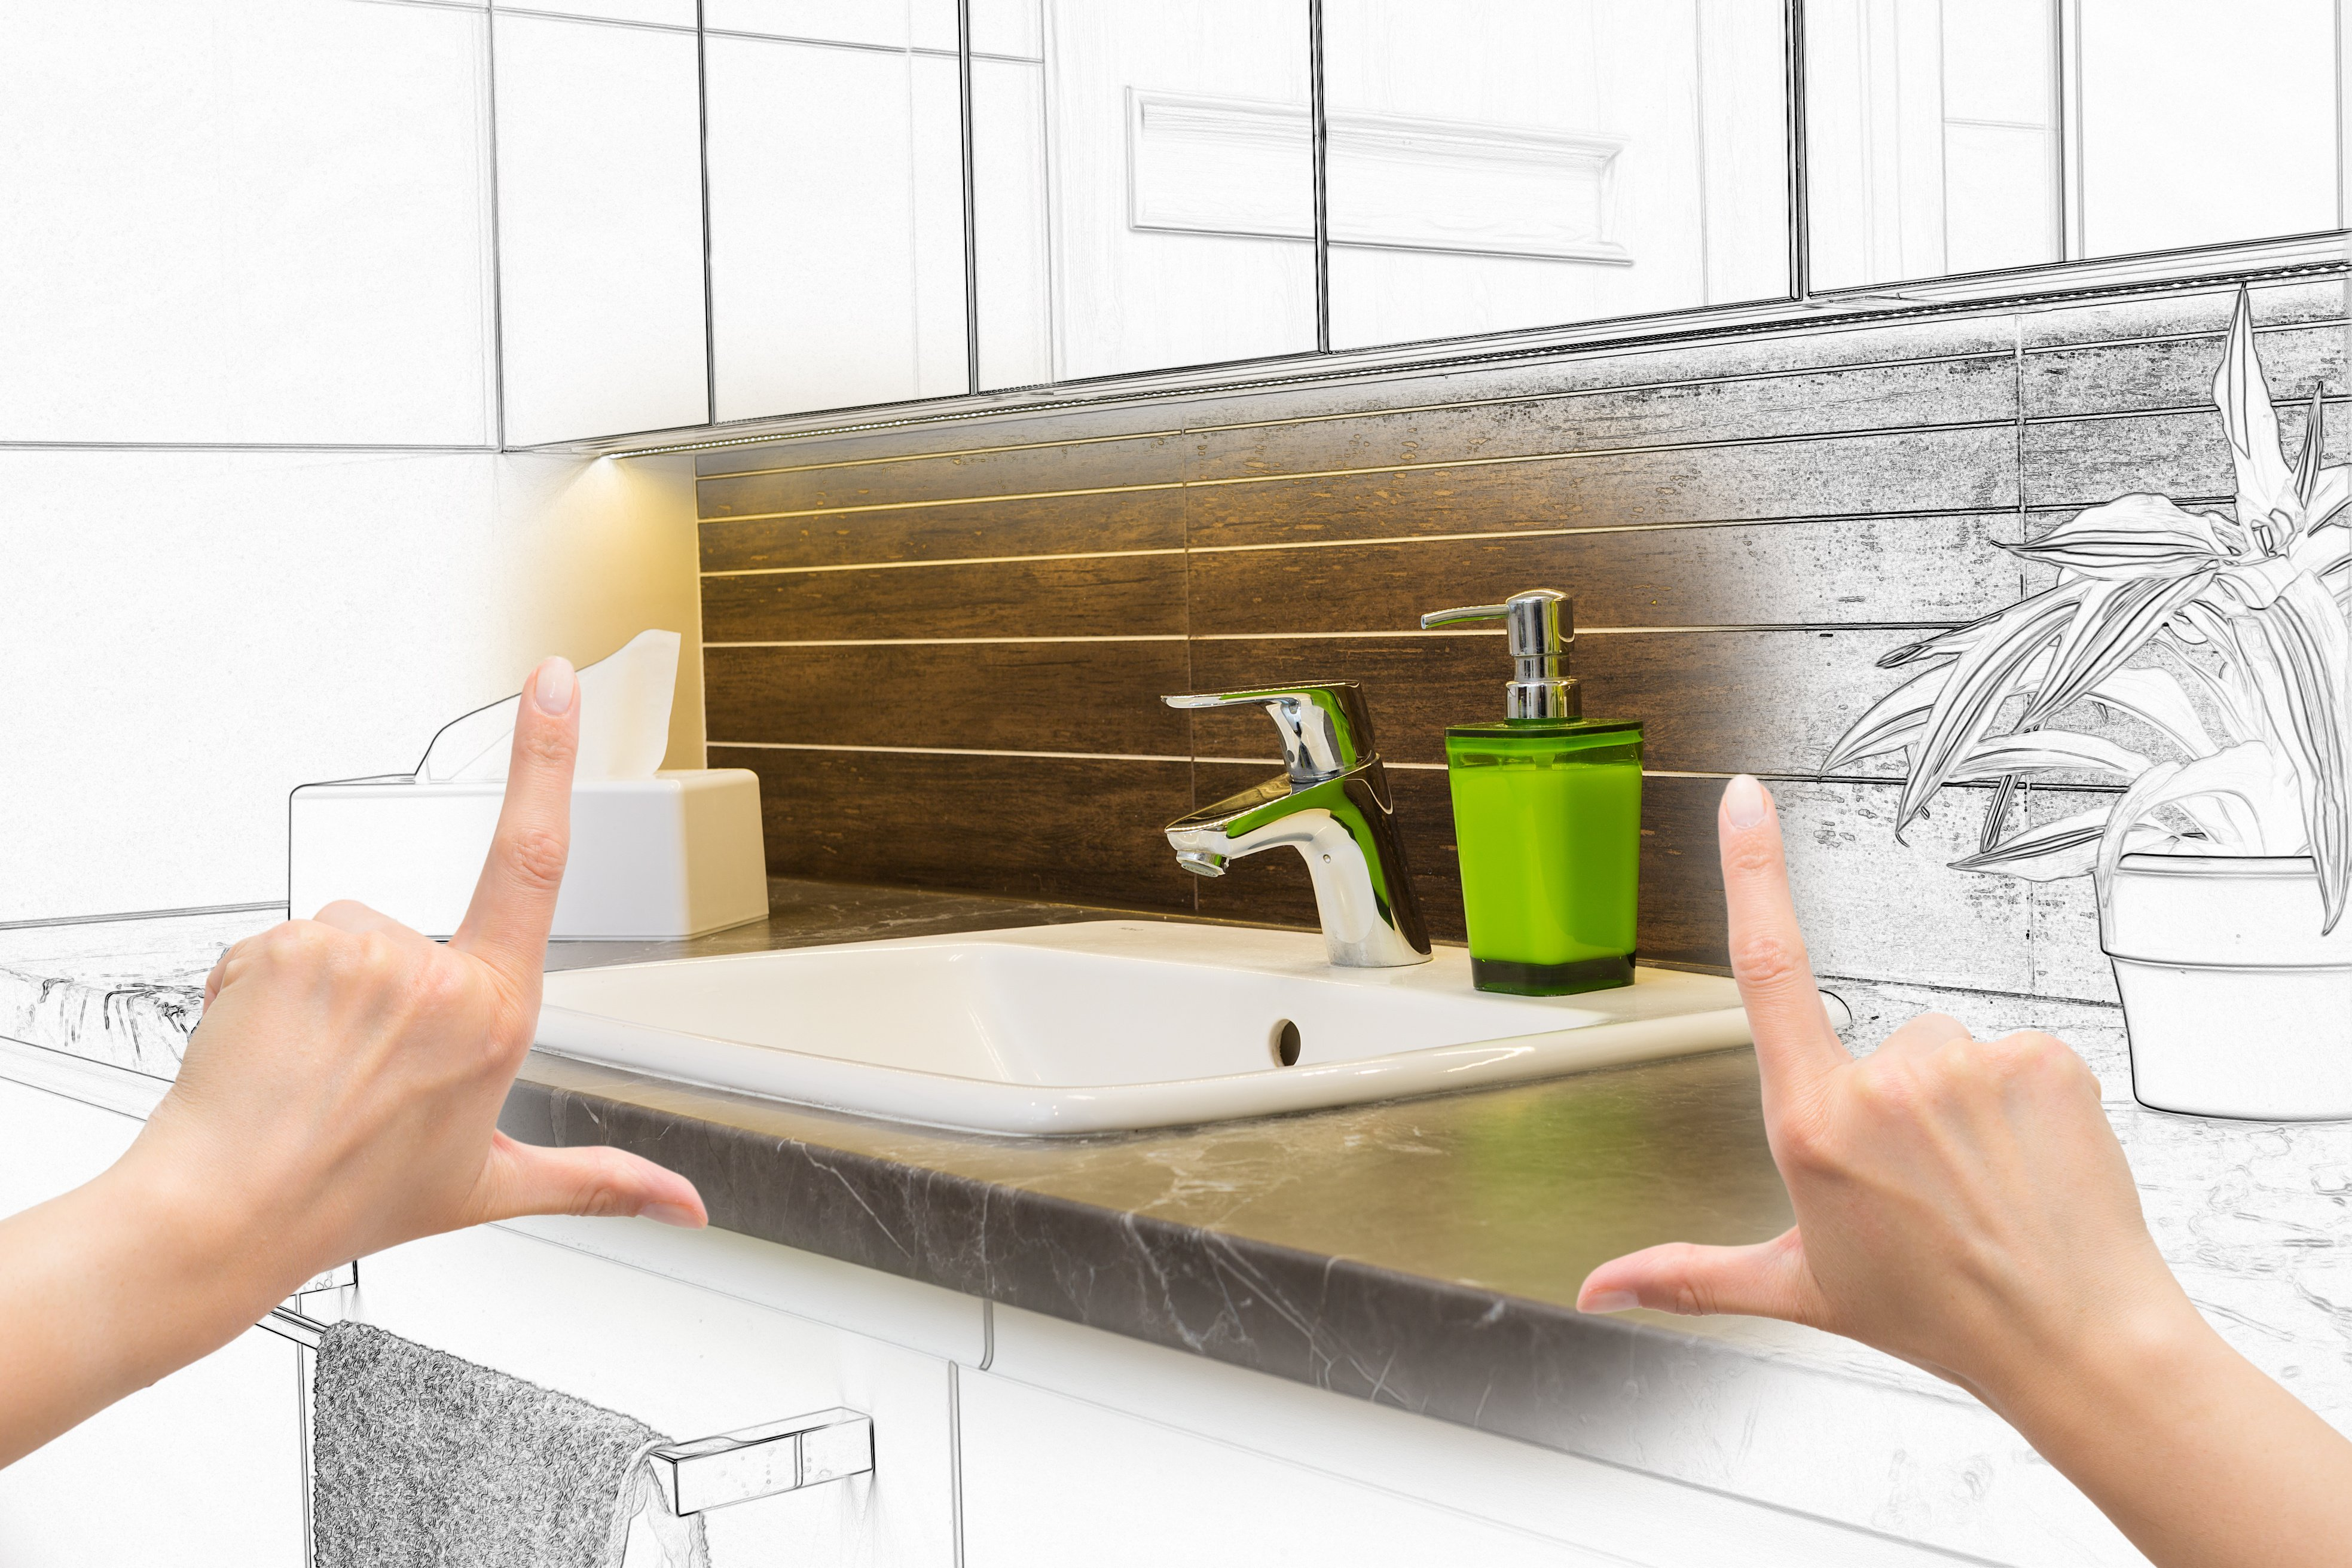 See how you can make your bathroom luxurious without having to empty your savings.